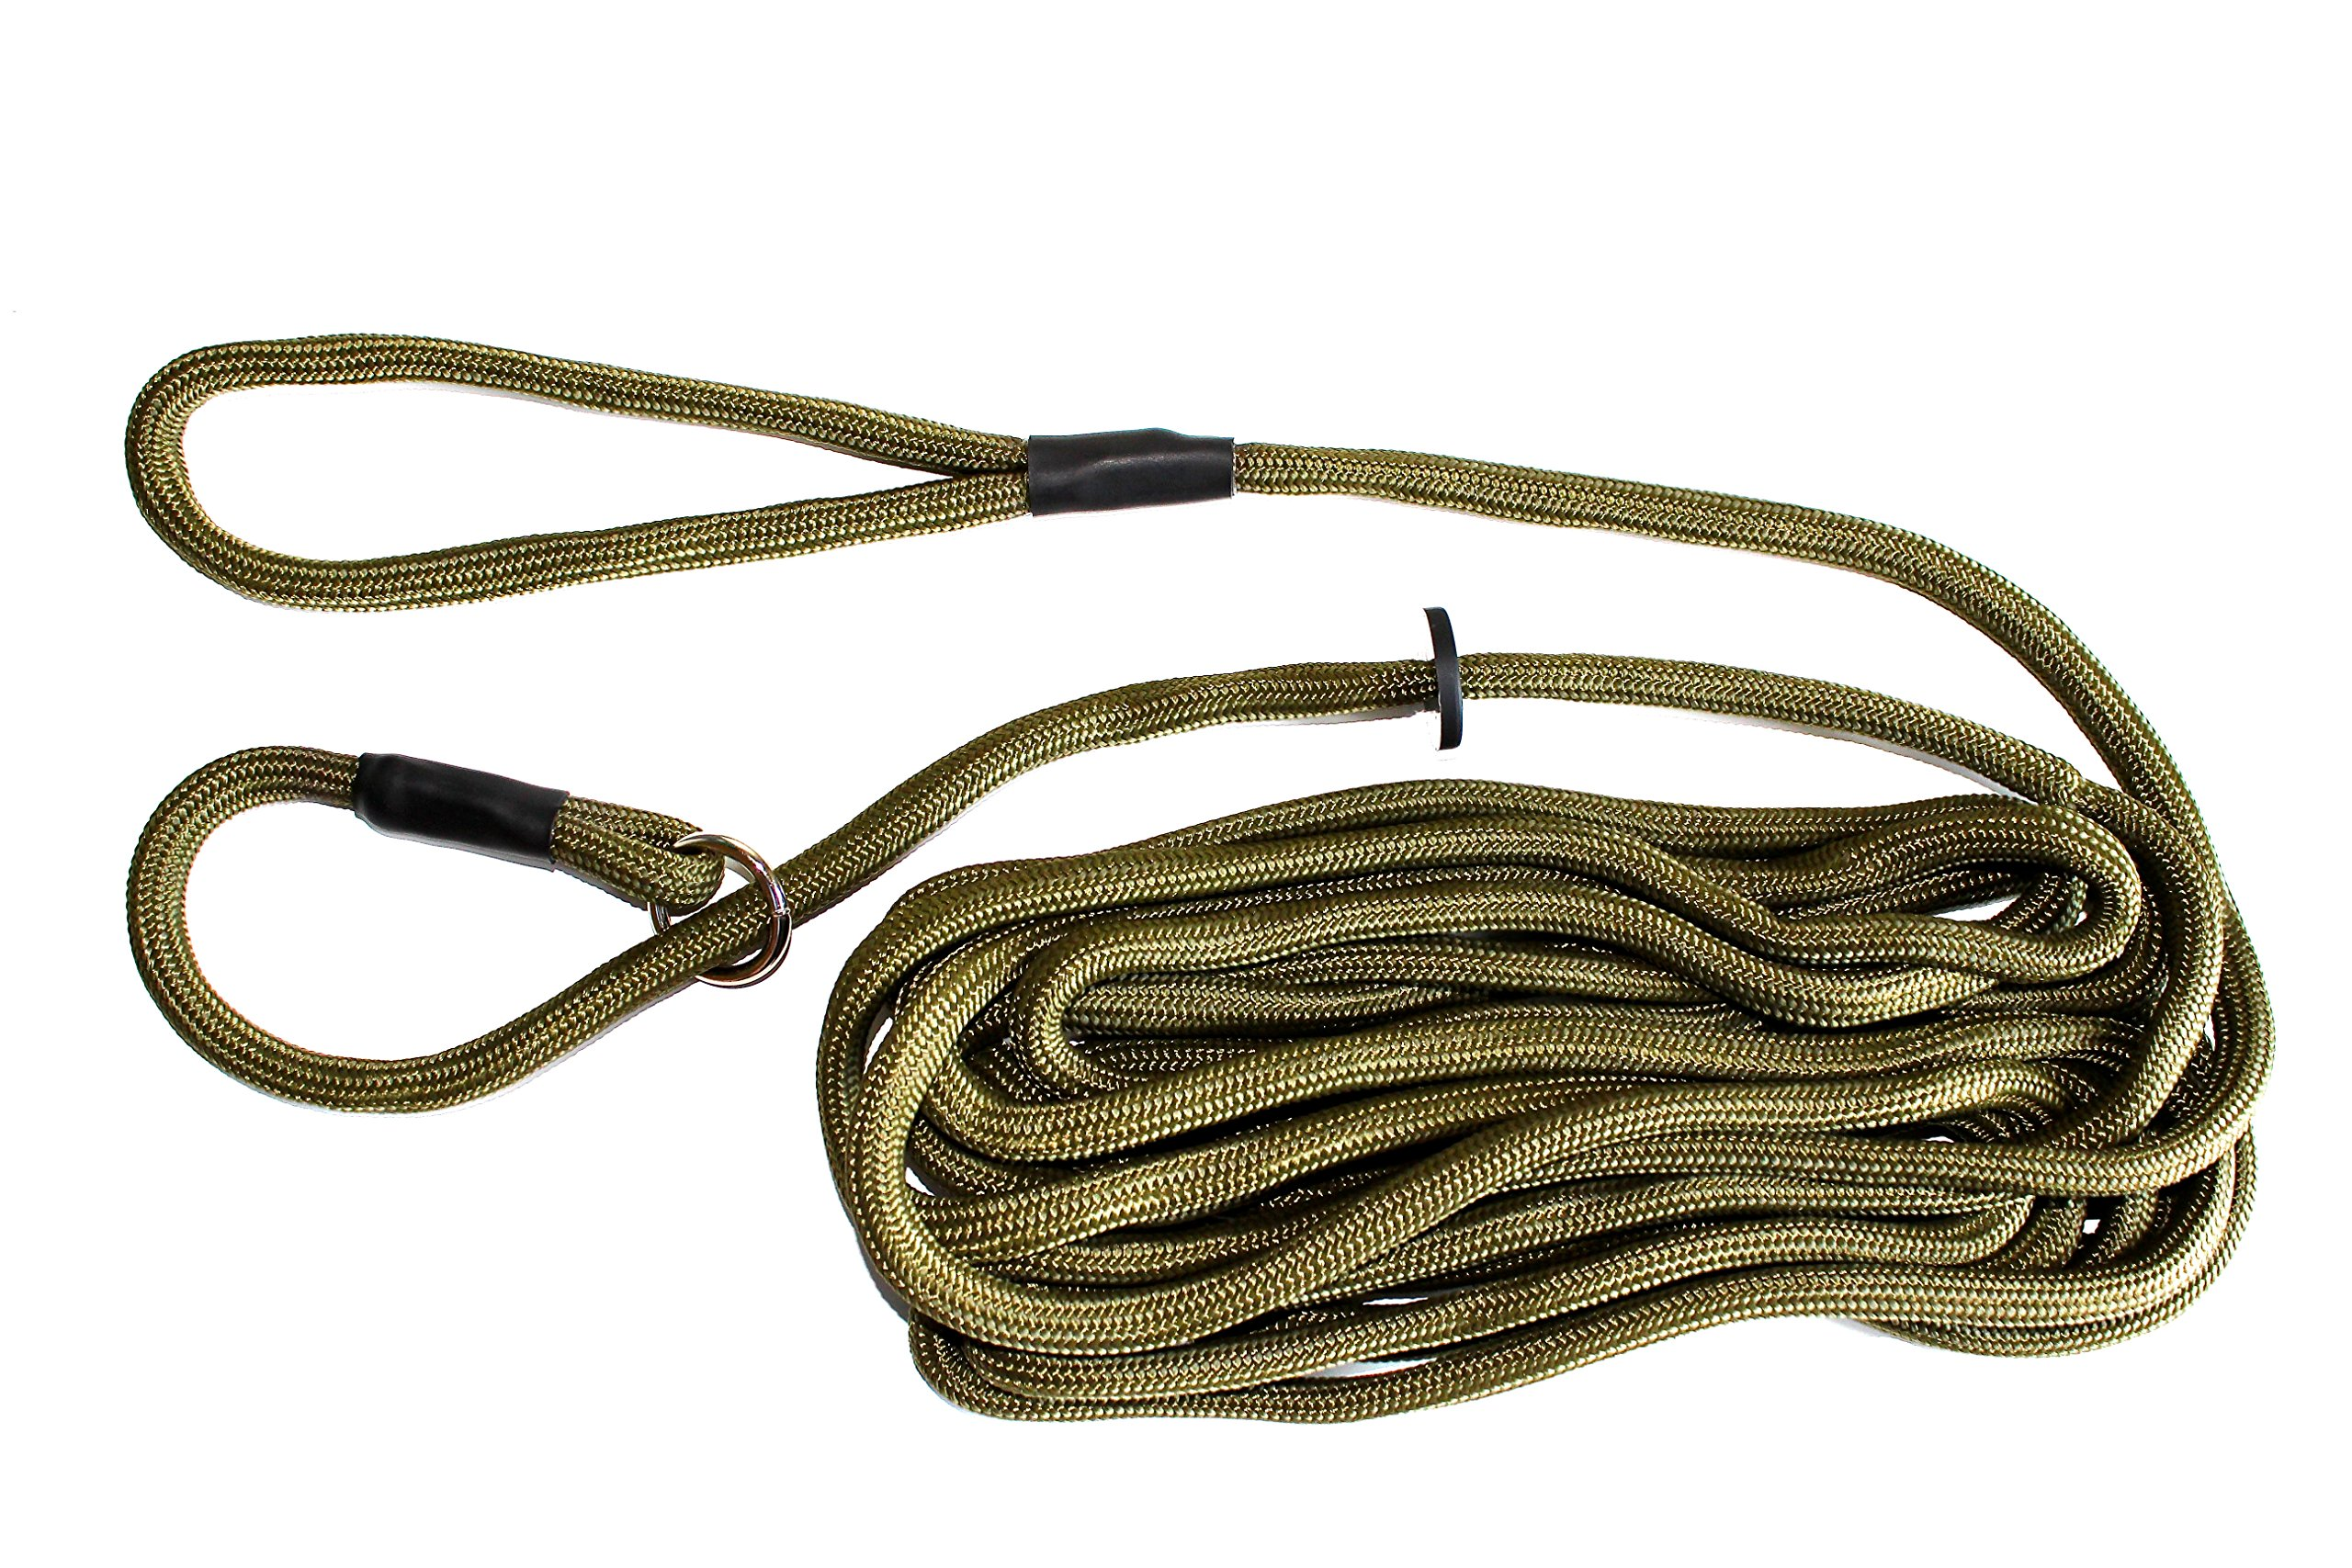 Dog & Field Training Lead - 6 Meter Long Training/Exercise Lead - Super Soft Braided Nylon - Train Or Exercise Your Dog Whilst Remaining in Full Control,Green,